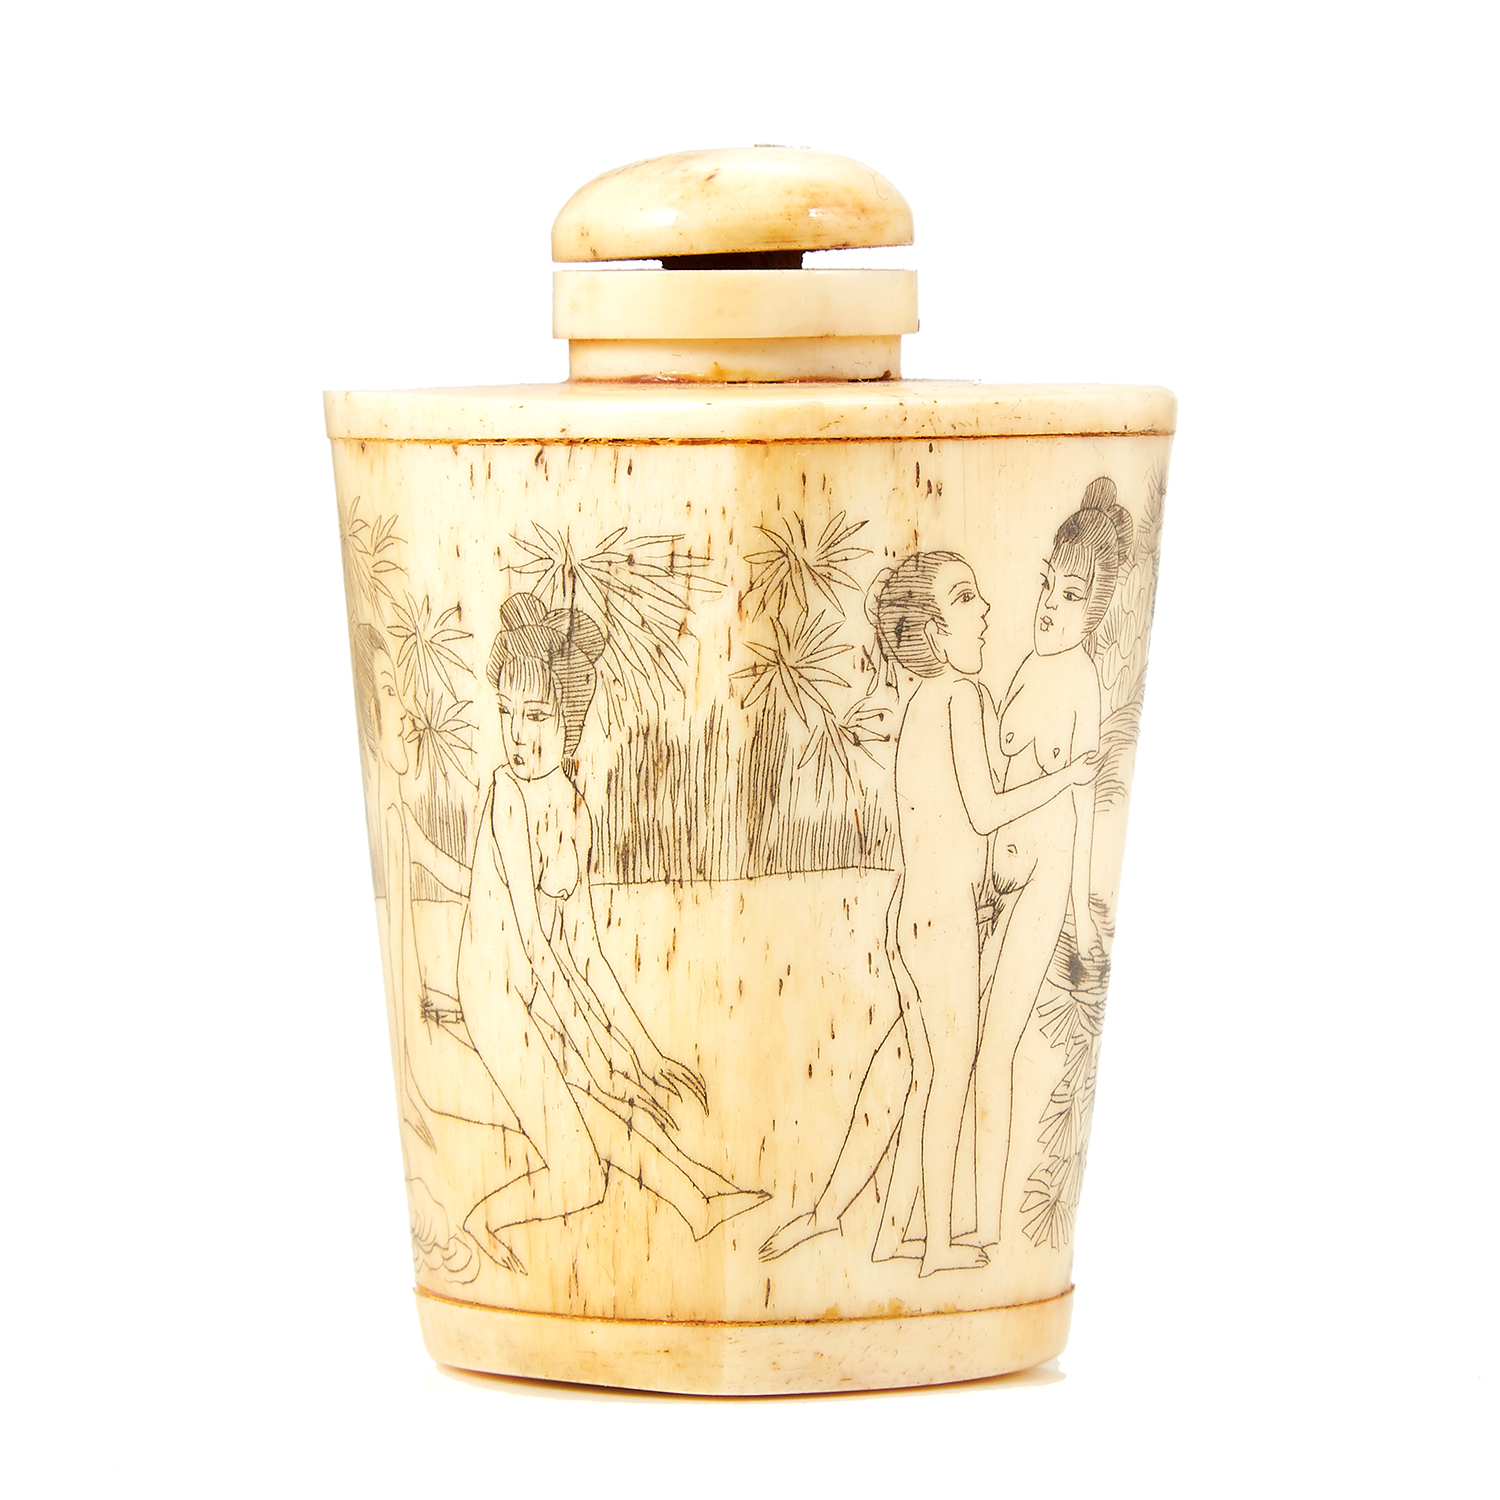 Los 41 - AN ANTIQUE CHINESE EROTIC BONE SNUFF BOTTLE, 19TH CENTURY decorated with erotic scenes, 6.5cm.